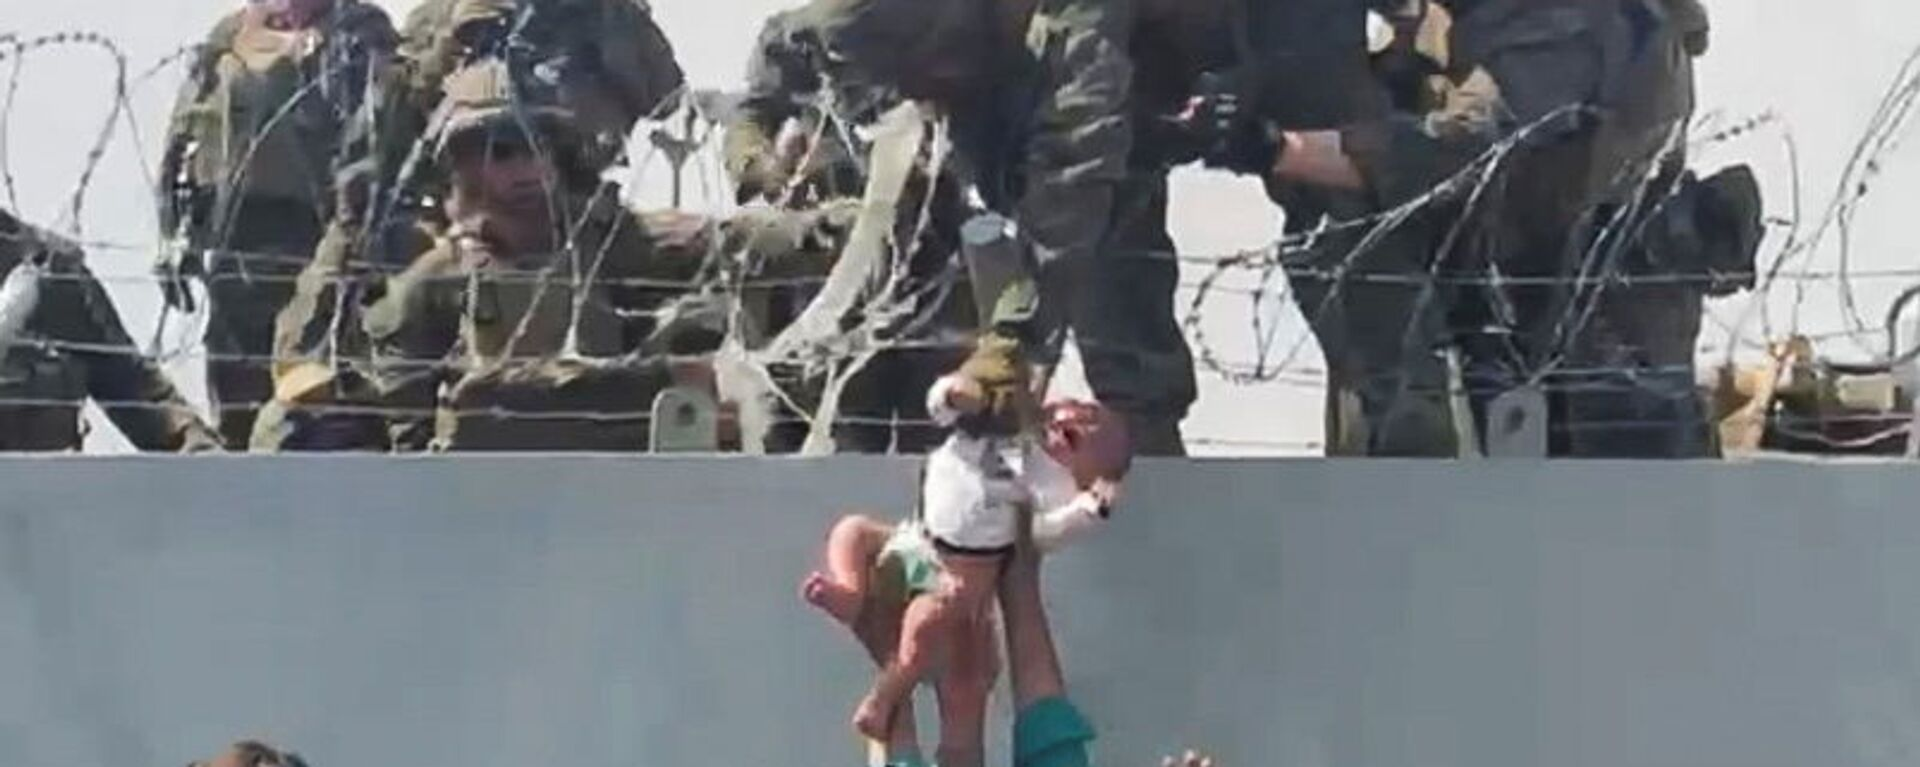 A baby is handed over to the American army over the perimeter wall of the airport for it to be evacuated, in Kabul, Afghanistan, August 19, 2021, in this still image taken from video obtained from social media. - Sputnik International, 1920, 15.09.2021